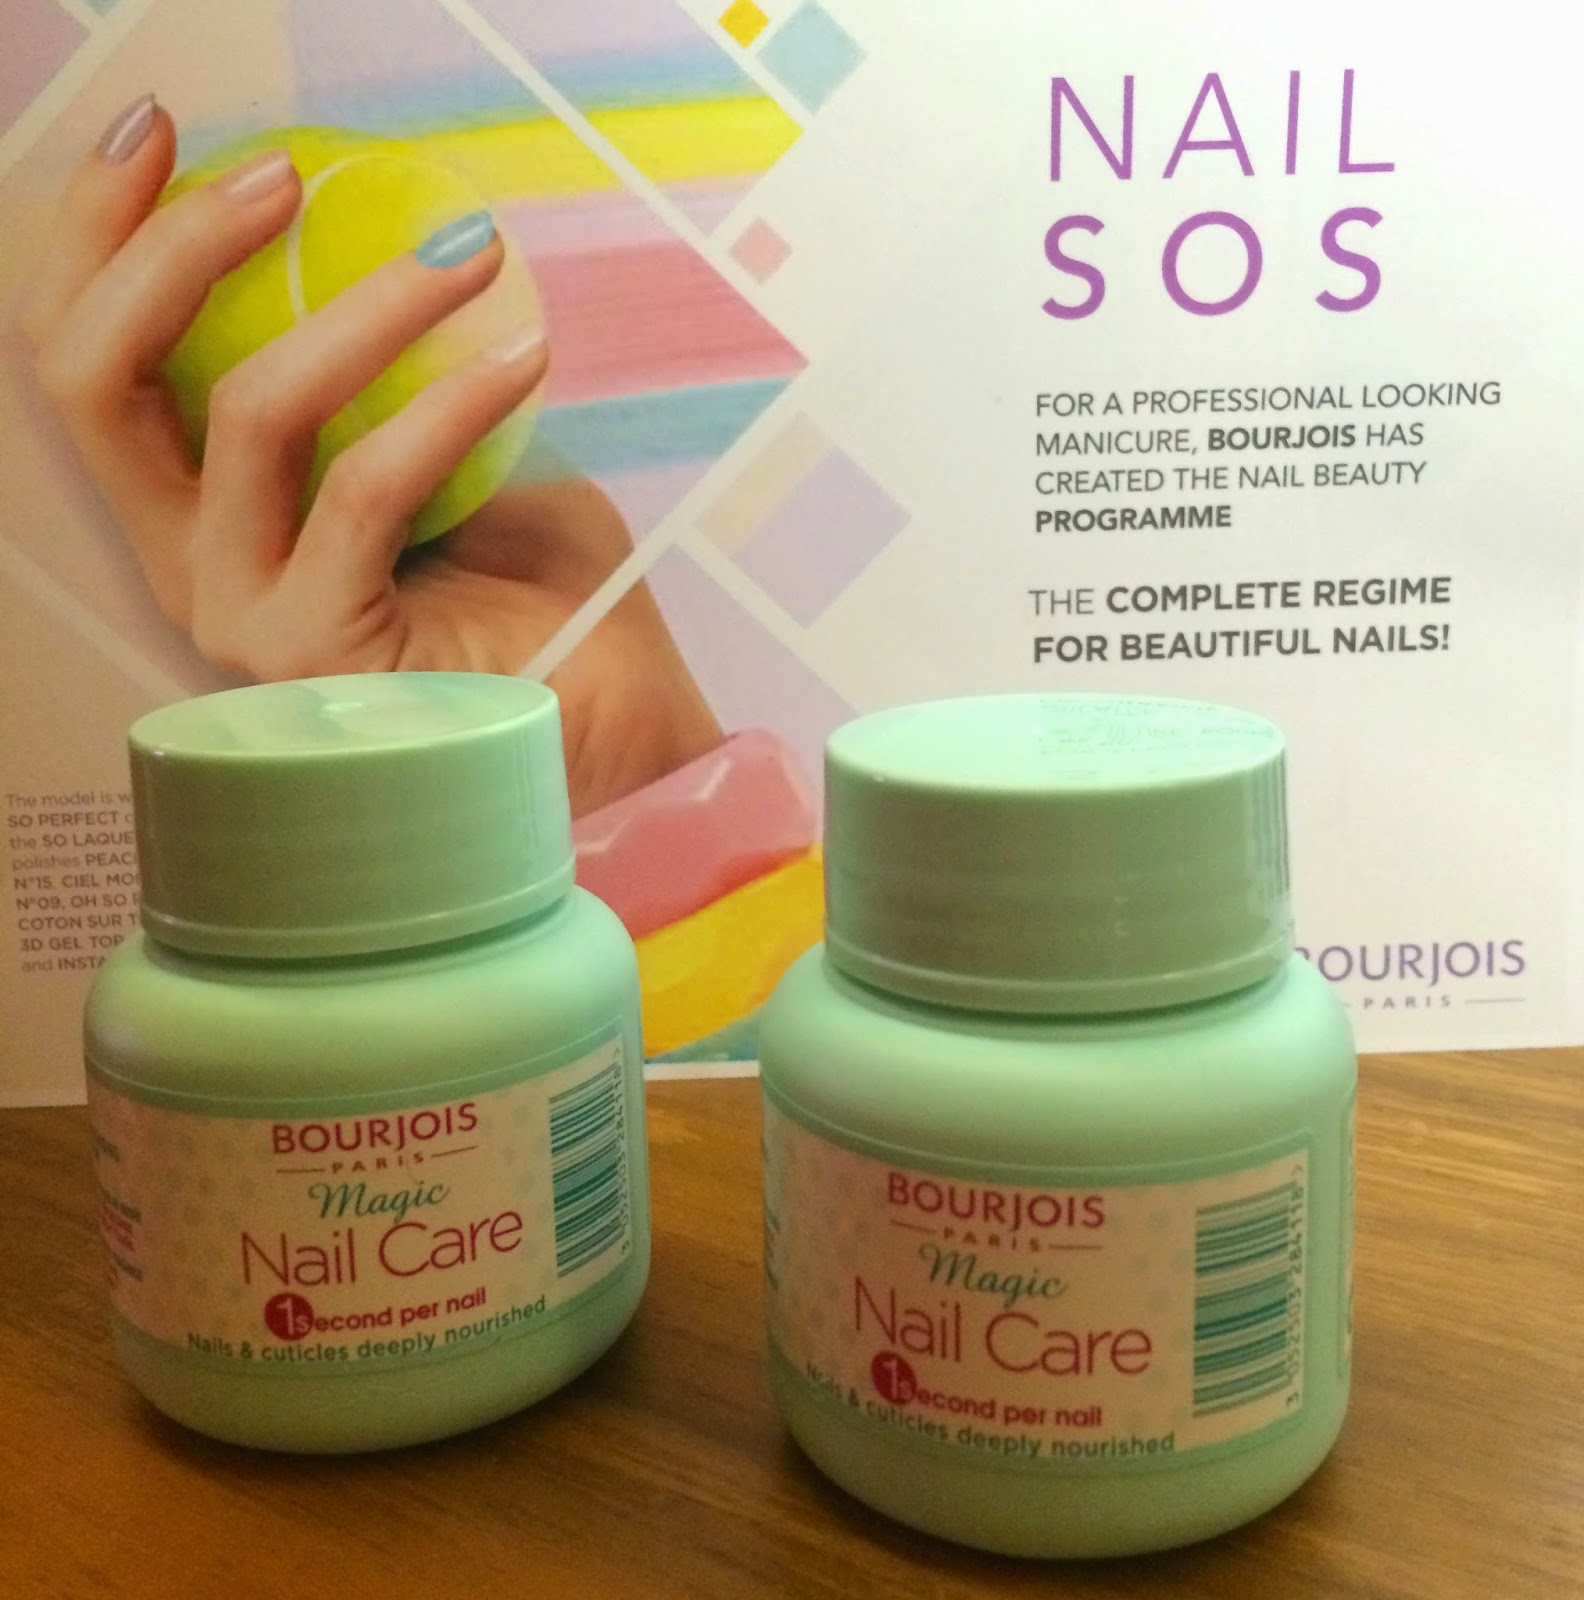 bourjois--2015-new-nail-care-pot